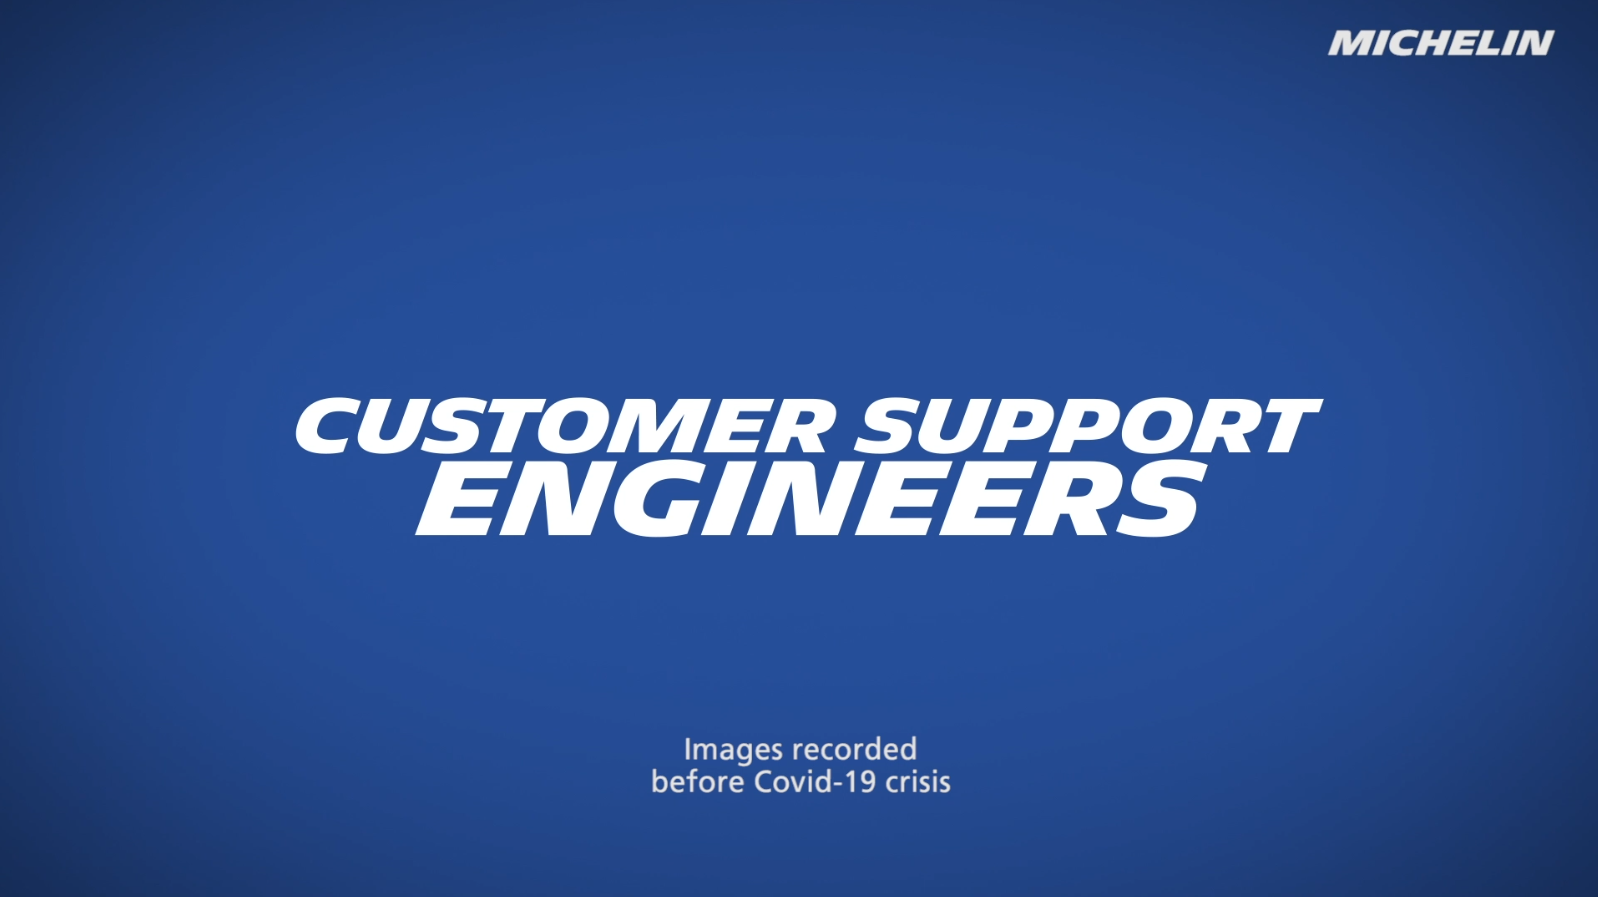 DISCOVER: CUSTOMER SUPPORT ENGINEERS